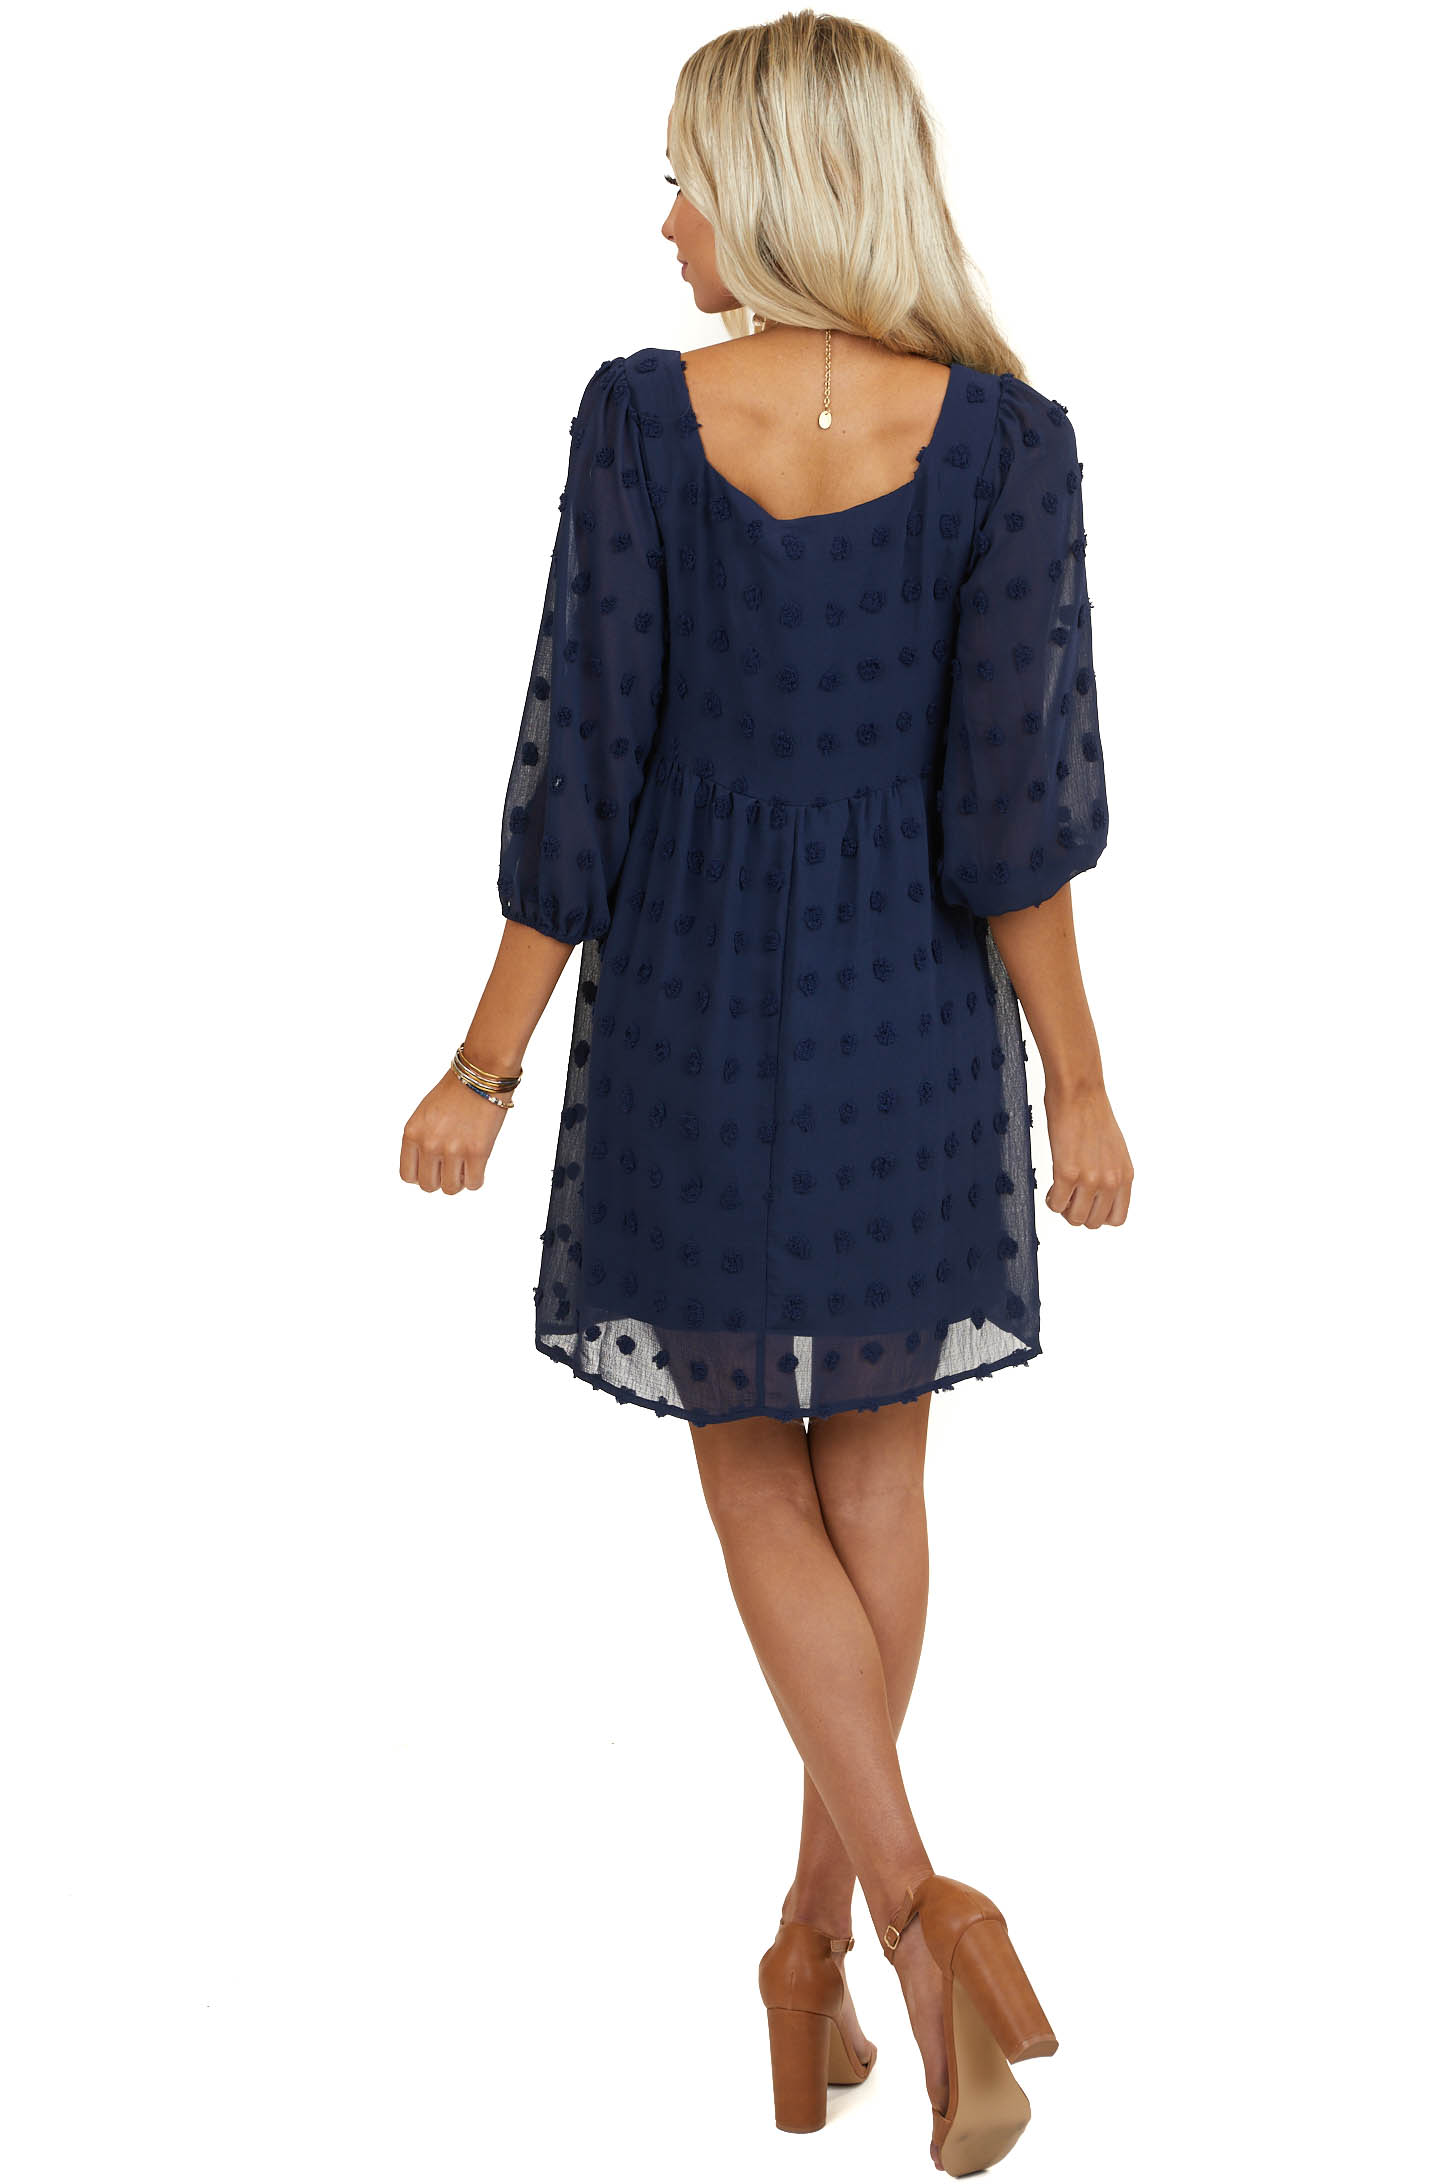 Navy Swiss Dot Babydoll Dress with 3/4 Length Sleeves